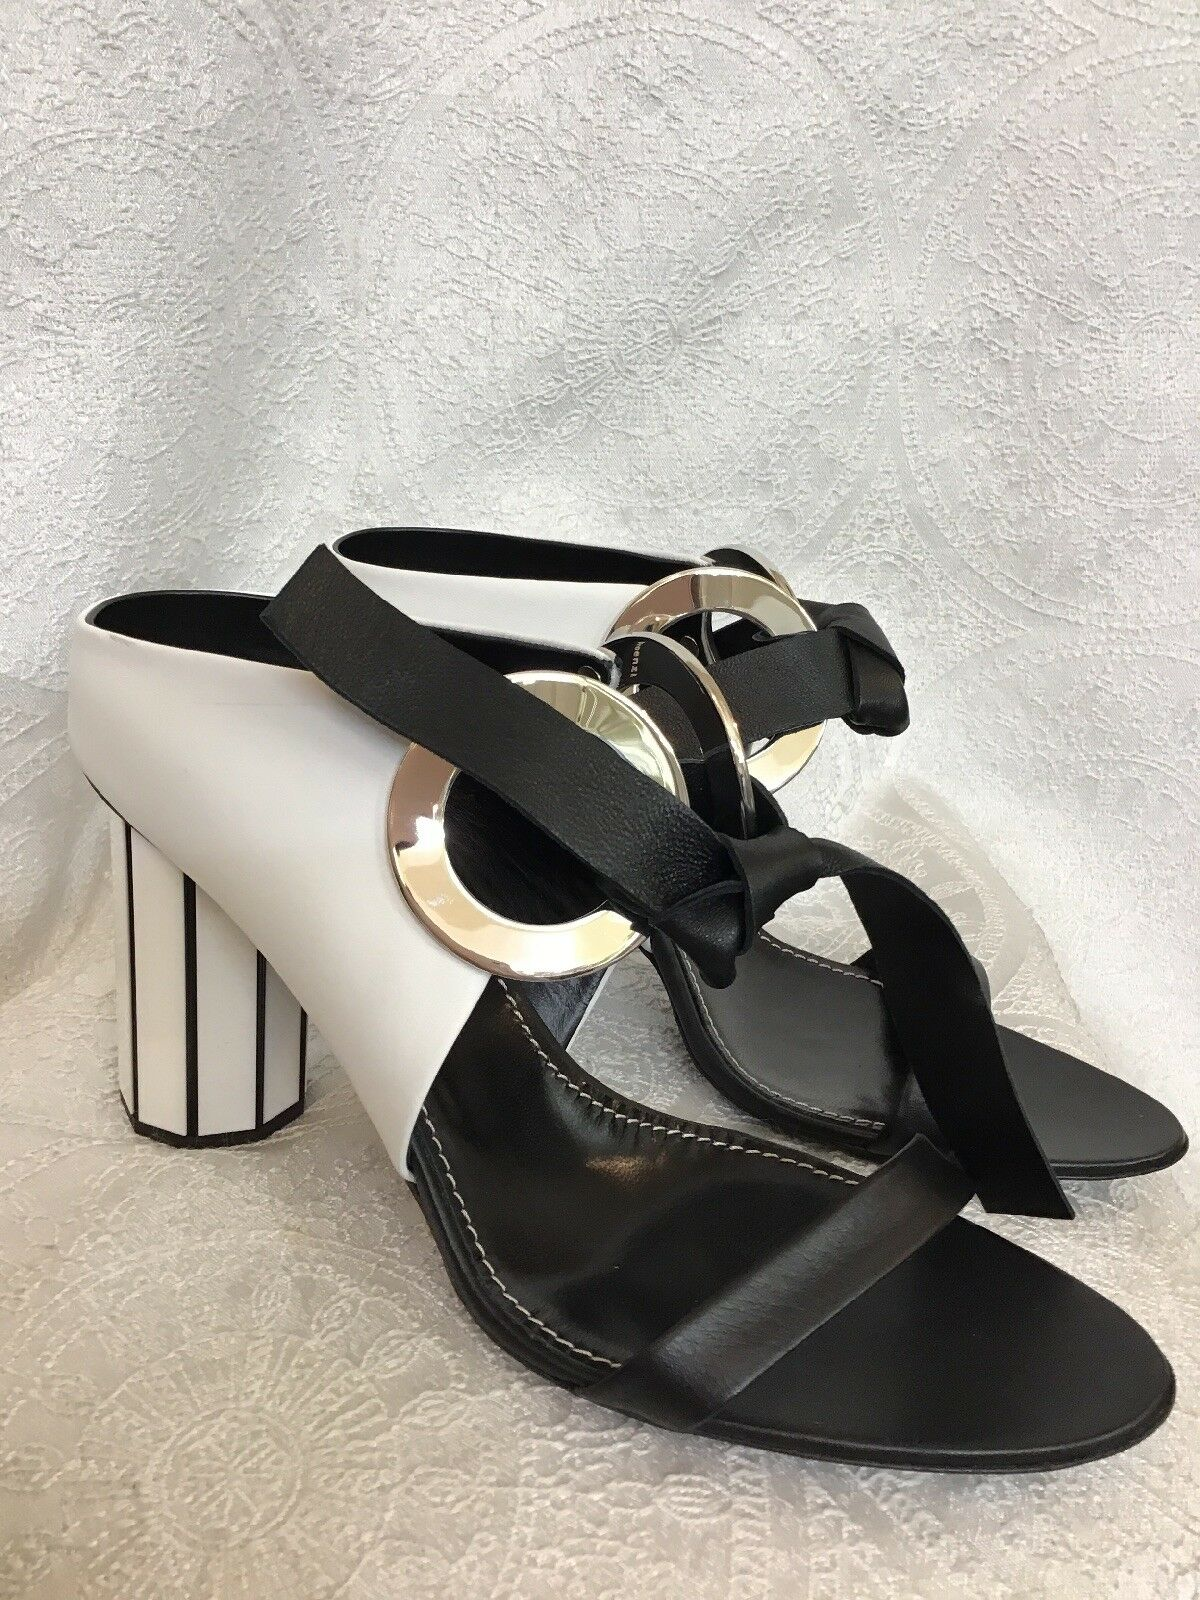 Proenza Schouler shoes Black& White Silver Ring Leather Tie RoundHeel Size 40 New